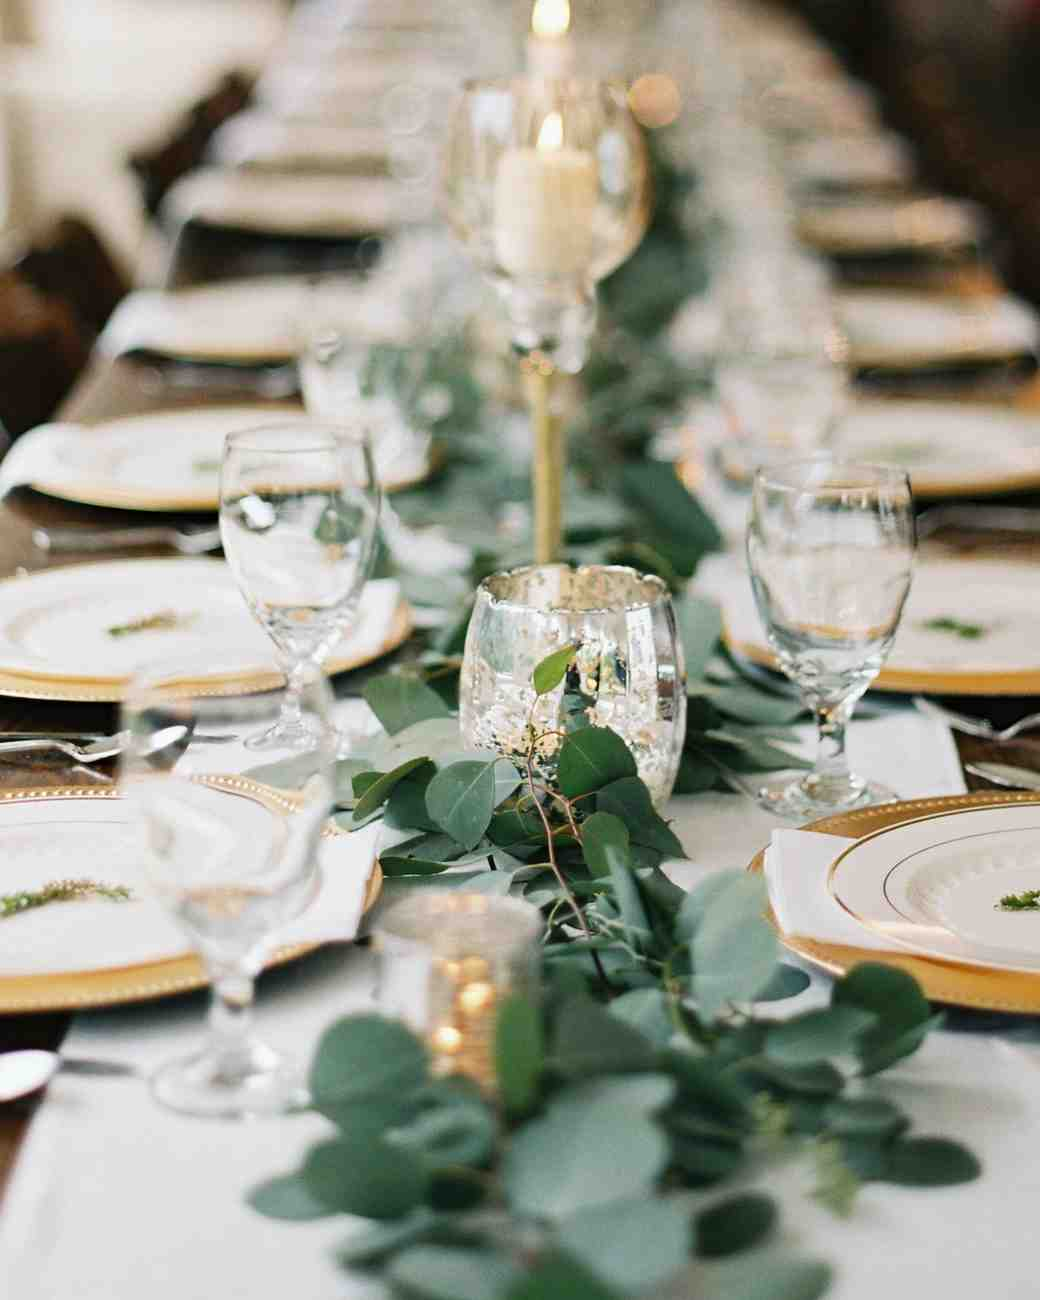 Wedding Table Decorations: 36 Simple Wedding Centerpieces